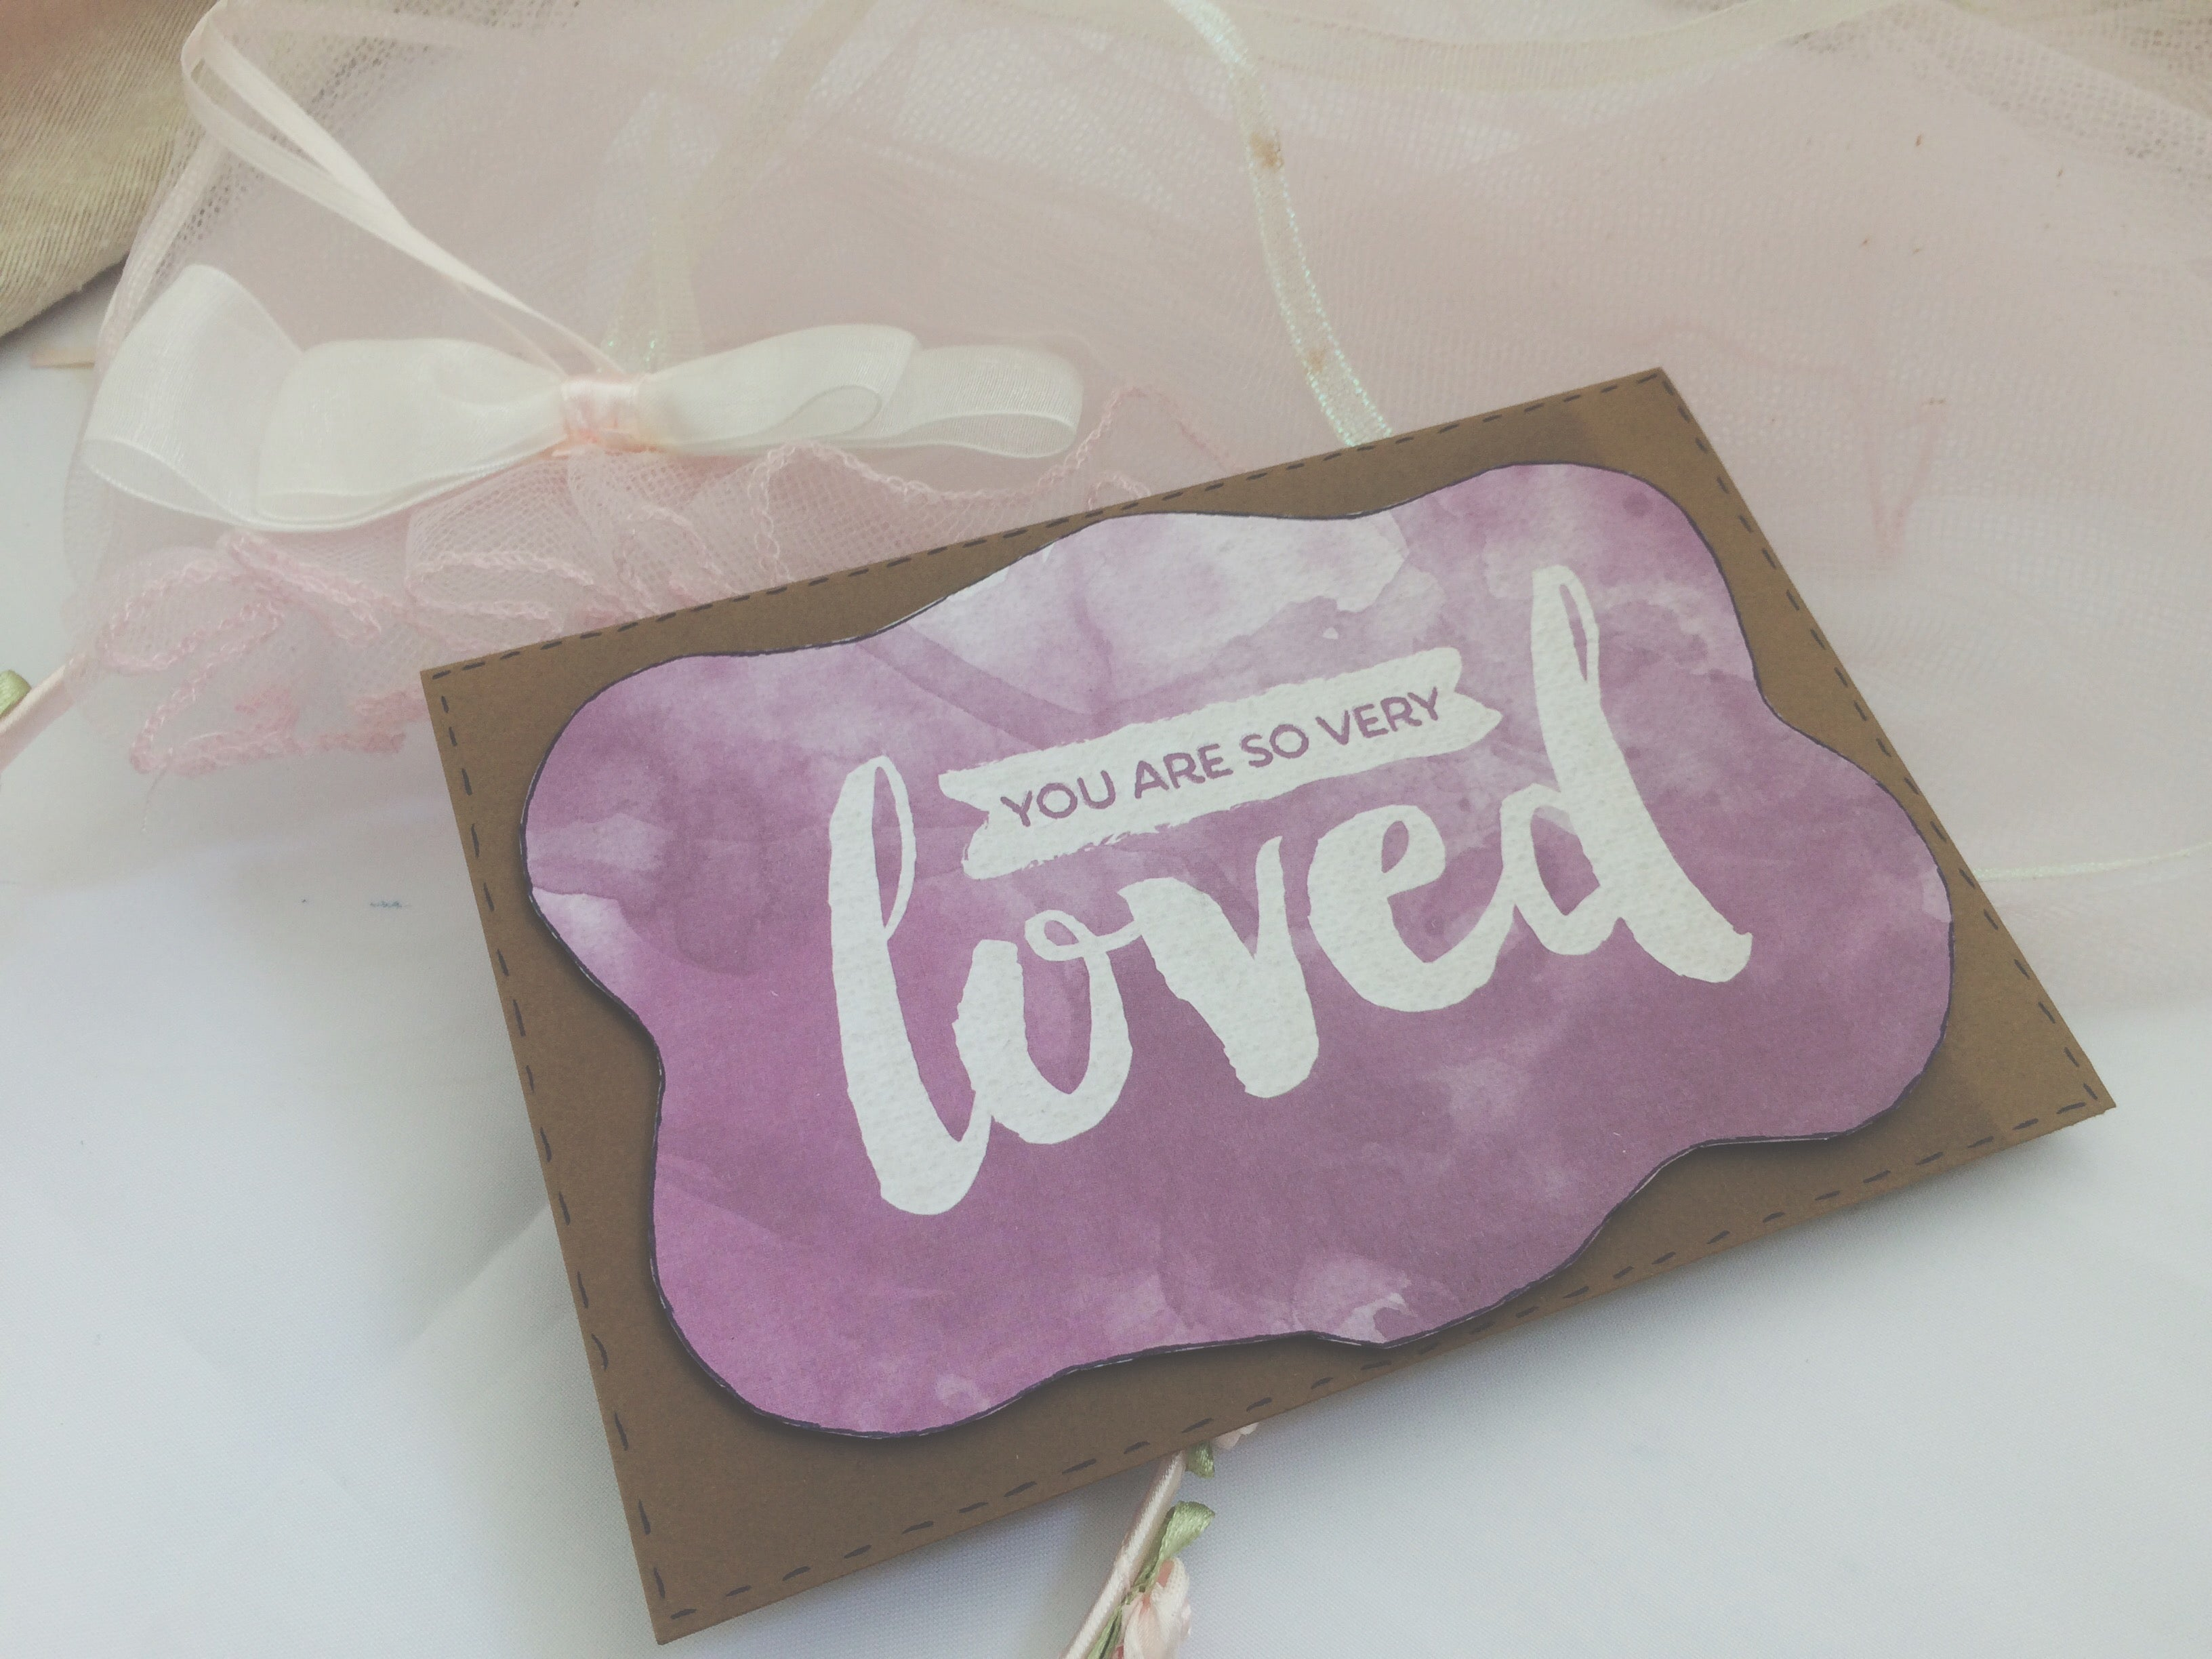 purple variant of Puddle of Love handmade Valentine's Day card by Thoughtfully Handmade